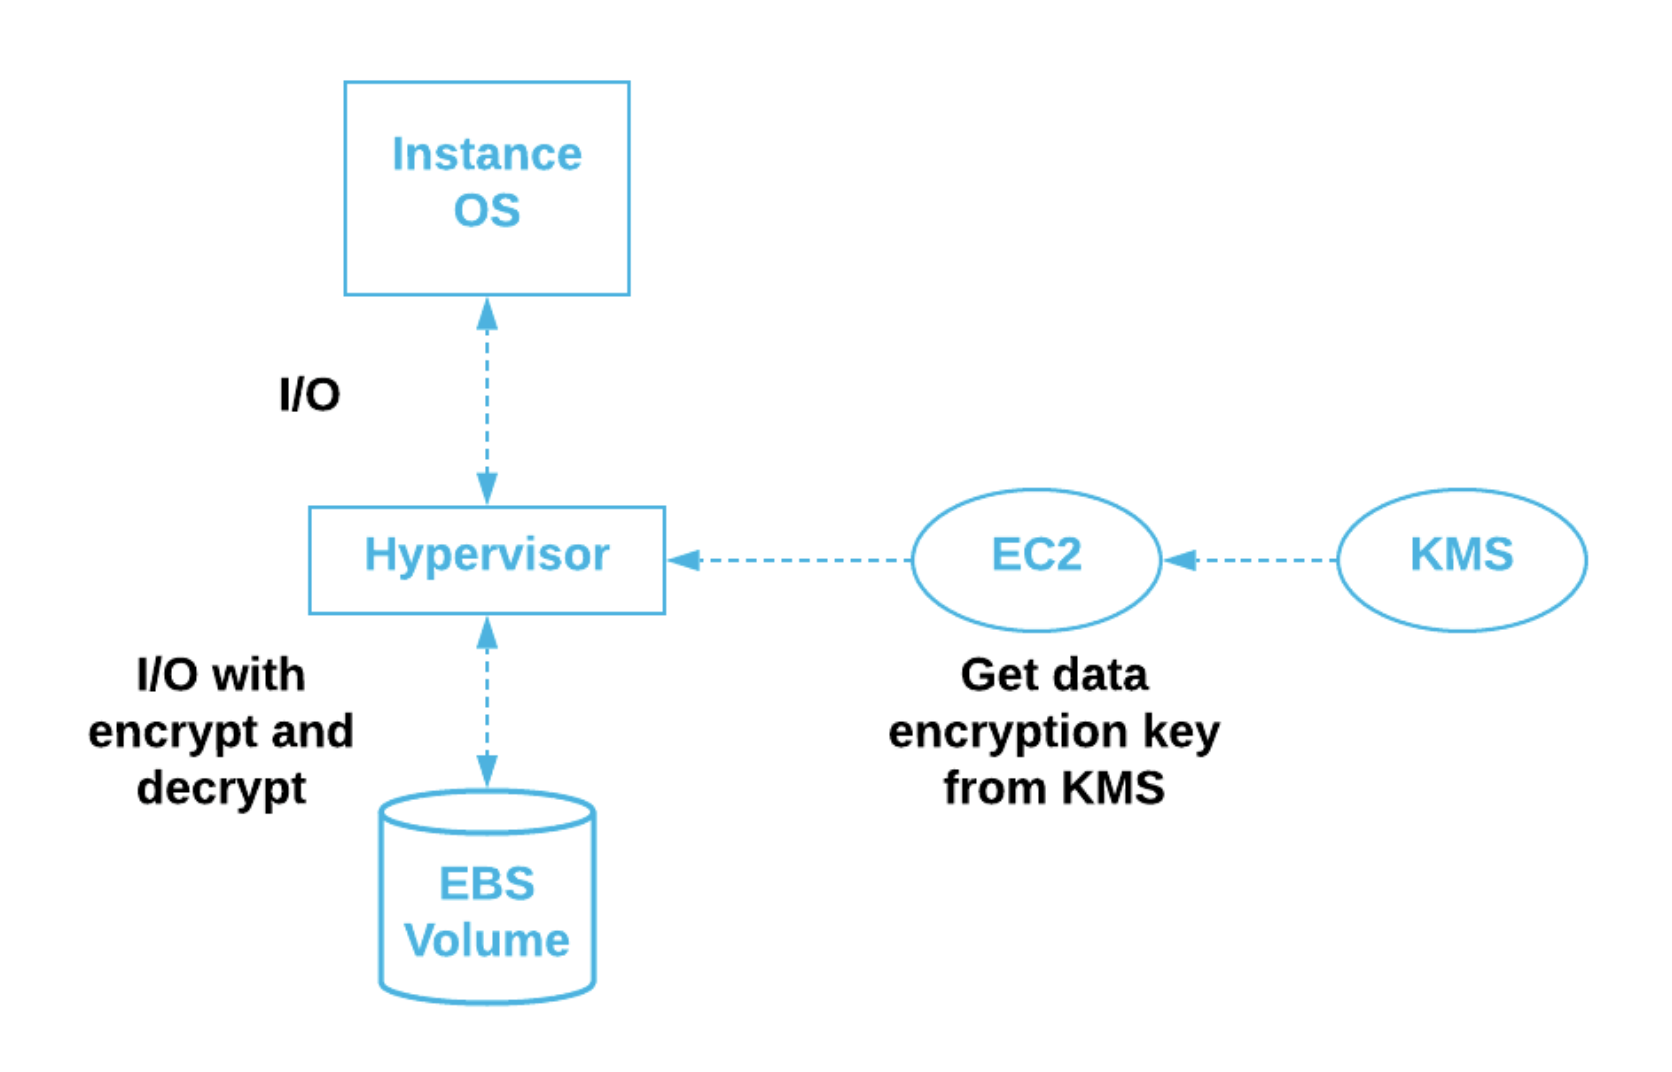 The EC2 service can obtain data encryption keys from KMS.  The encryption keys can be used by the EC2 hypervisor to ensure that data is encrypted on the physical disk volumes.